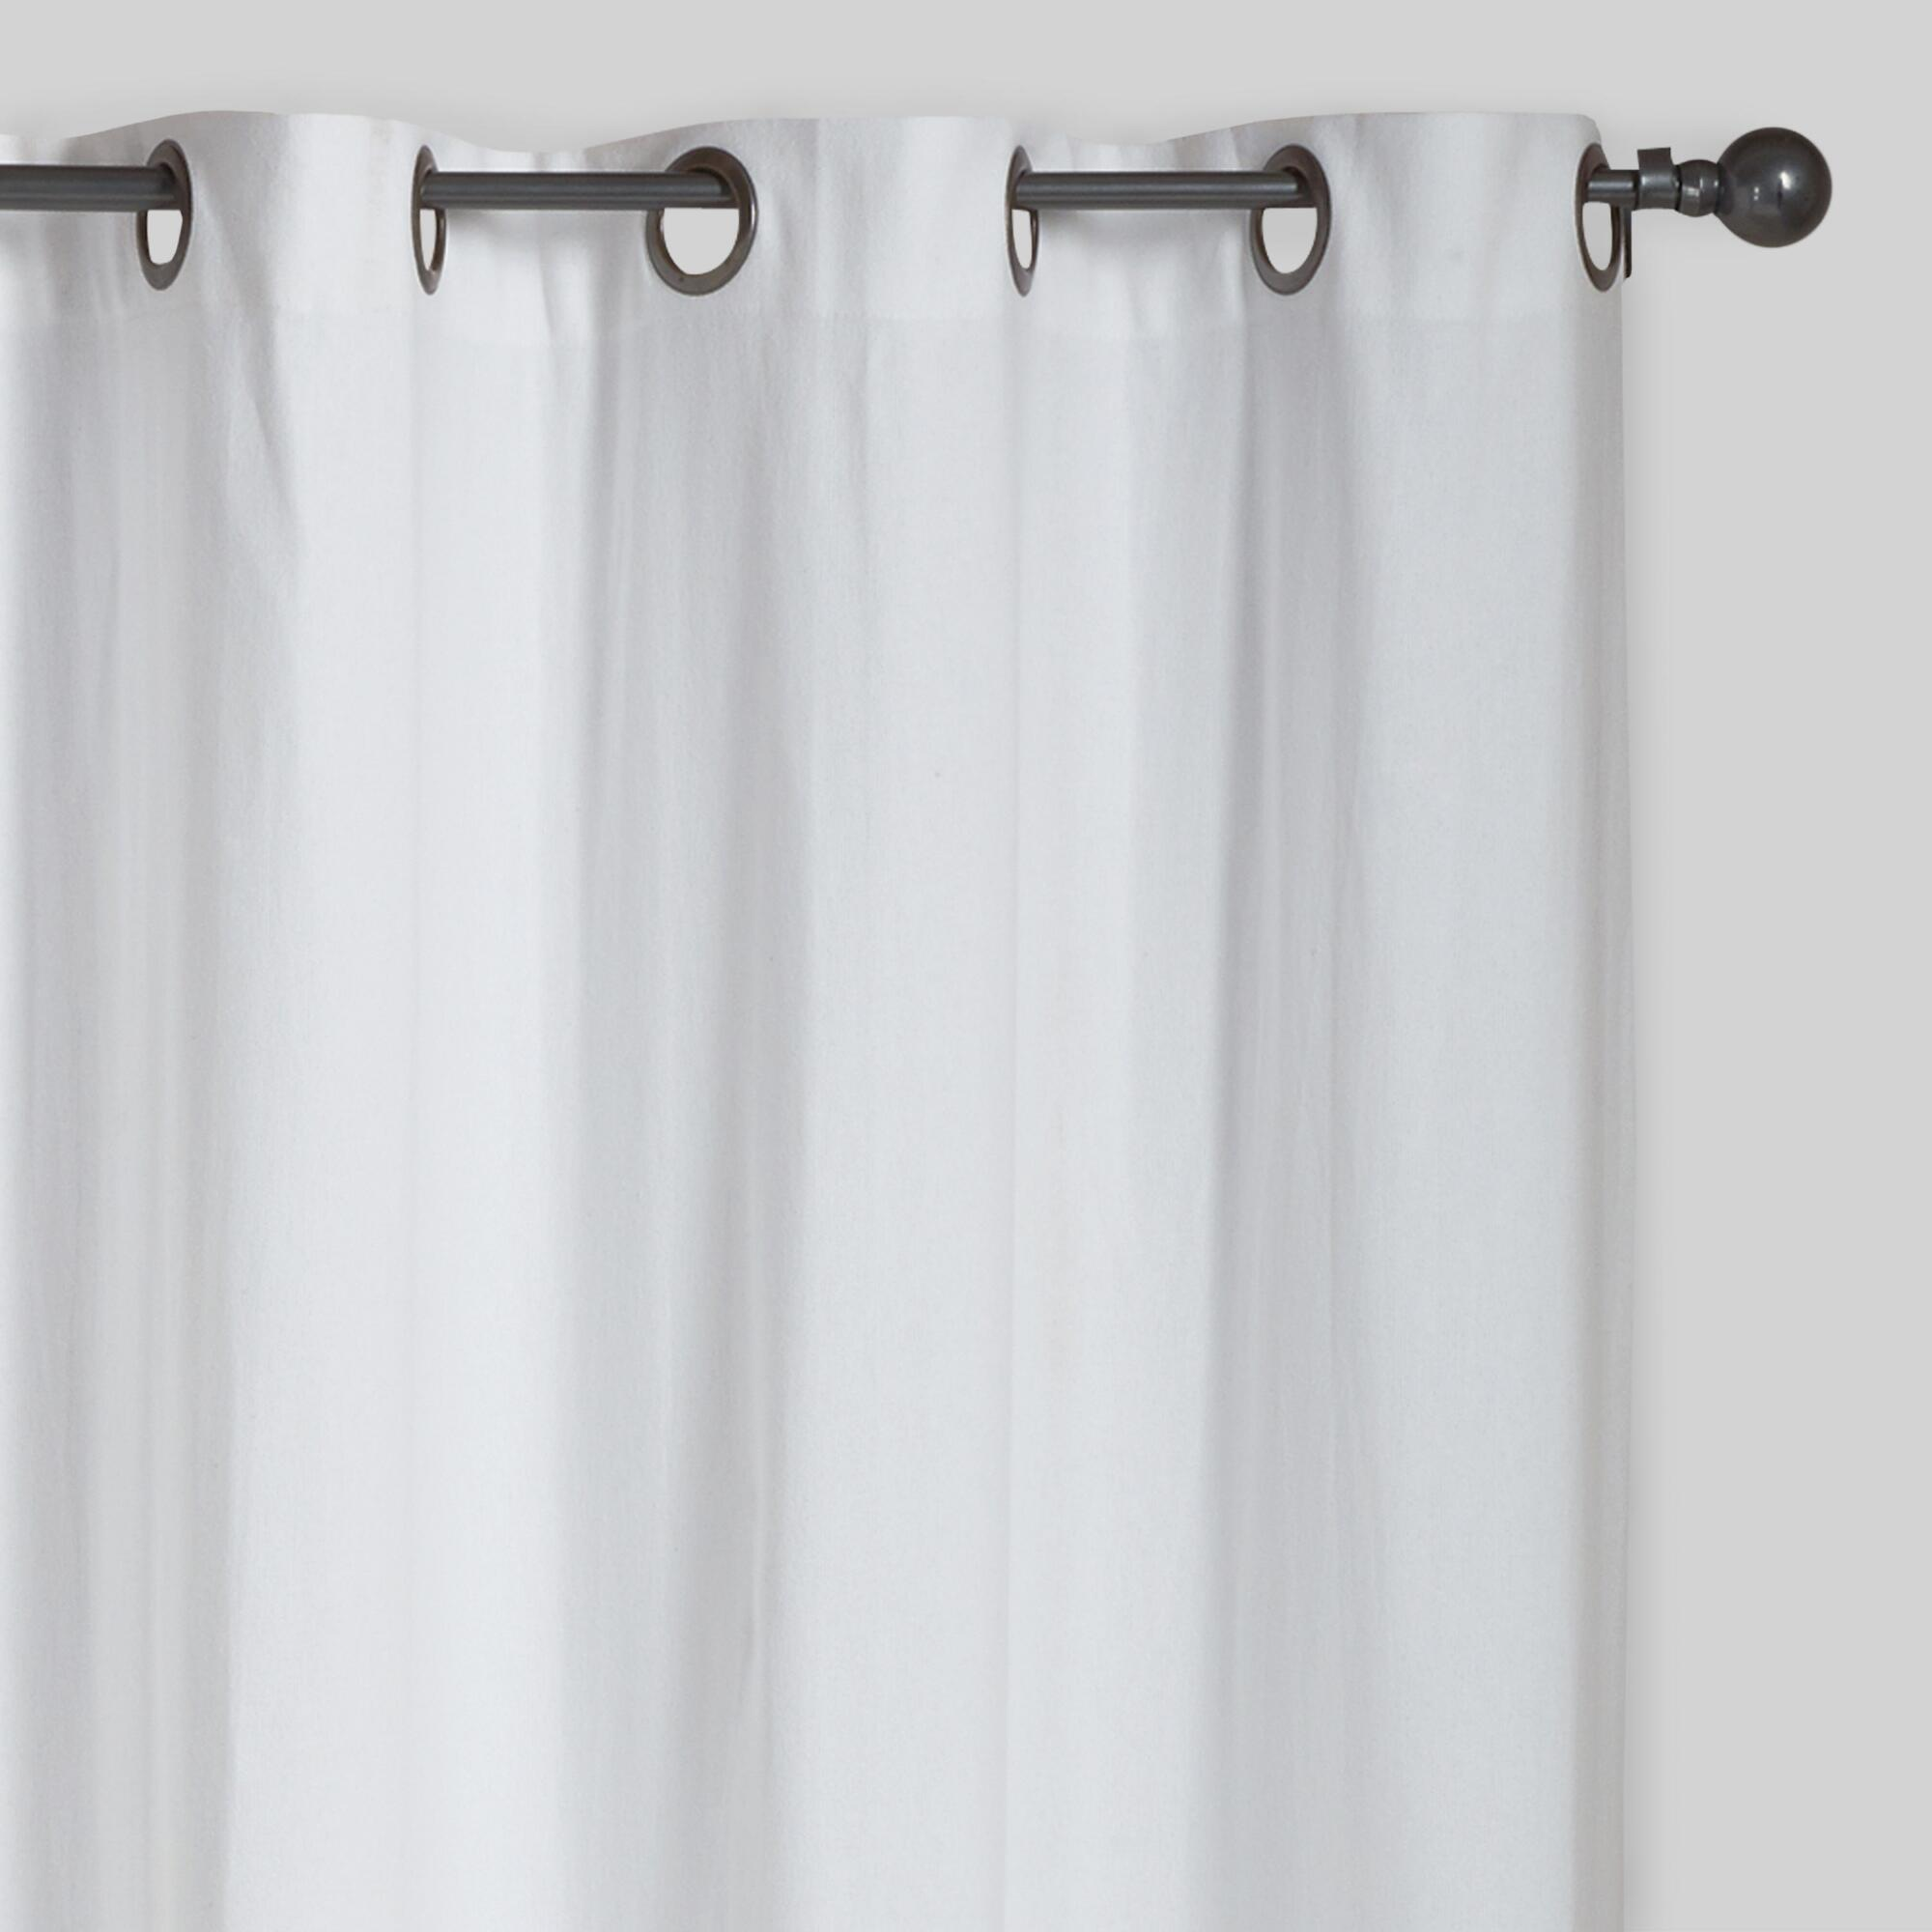 com curtains nickel white panels photos studio shower window amazon design withay grey greyains unique blue andey black brushed burlap rods set of kitchen drapes max and curtain size full